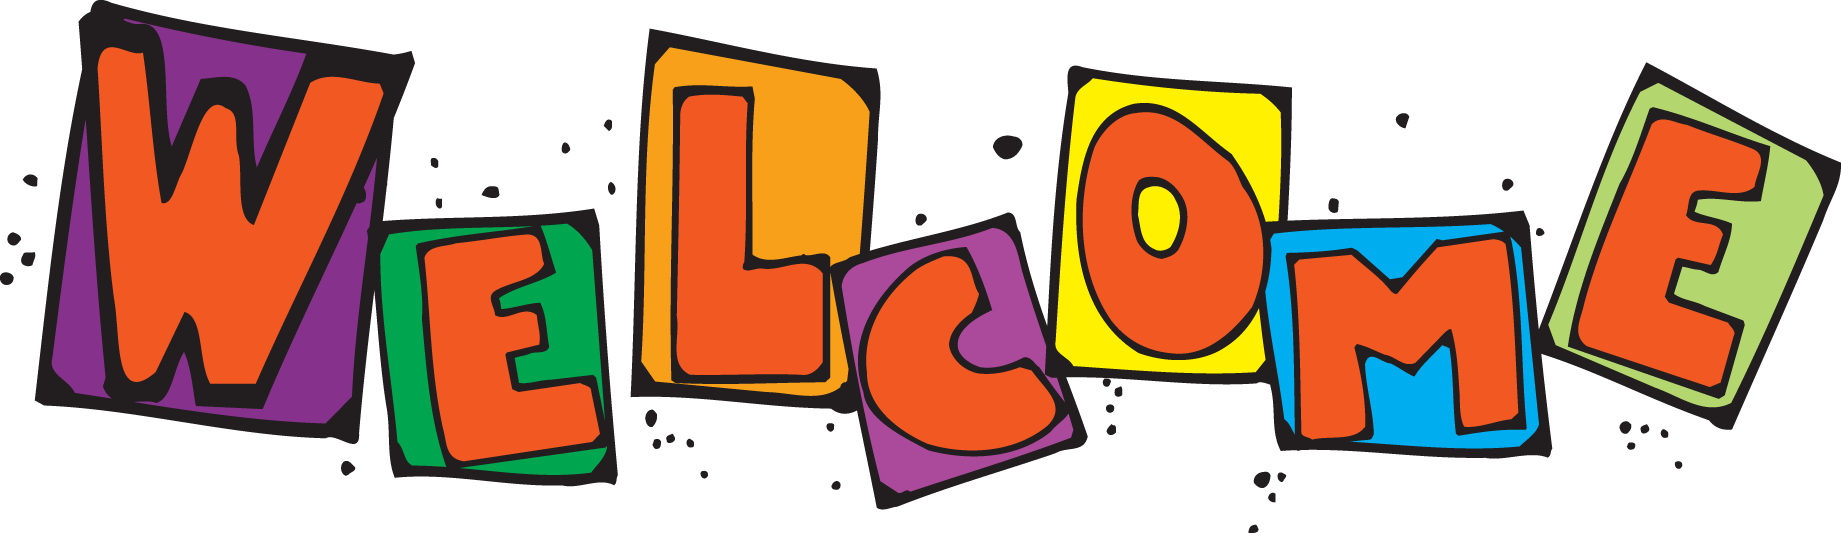 Clipart welcome to school jpg royalty free library Blog Archives jpg royalty free library